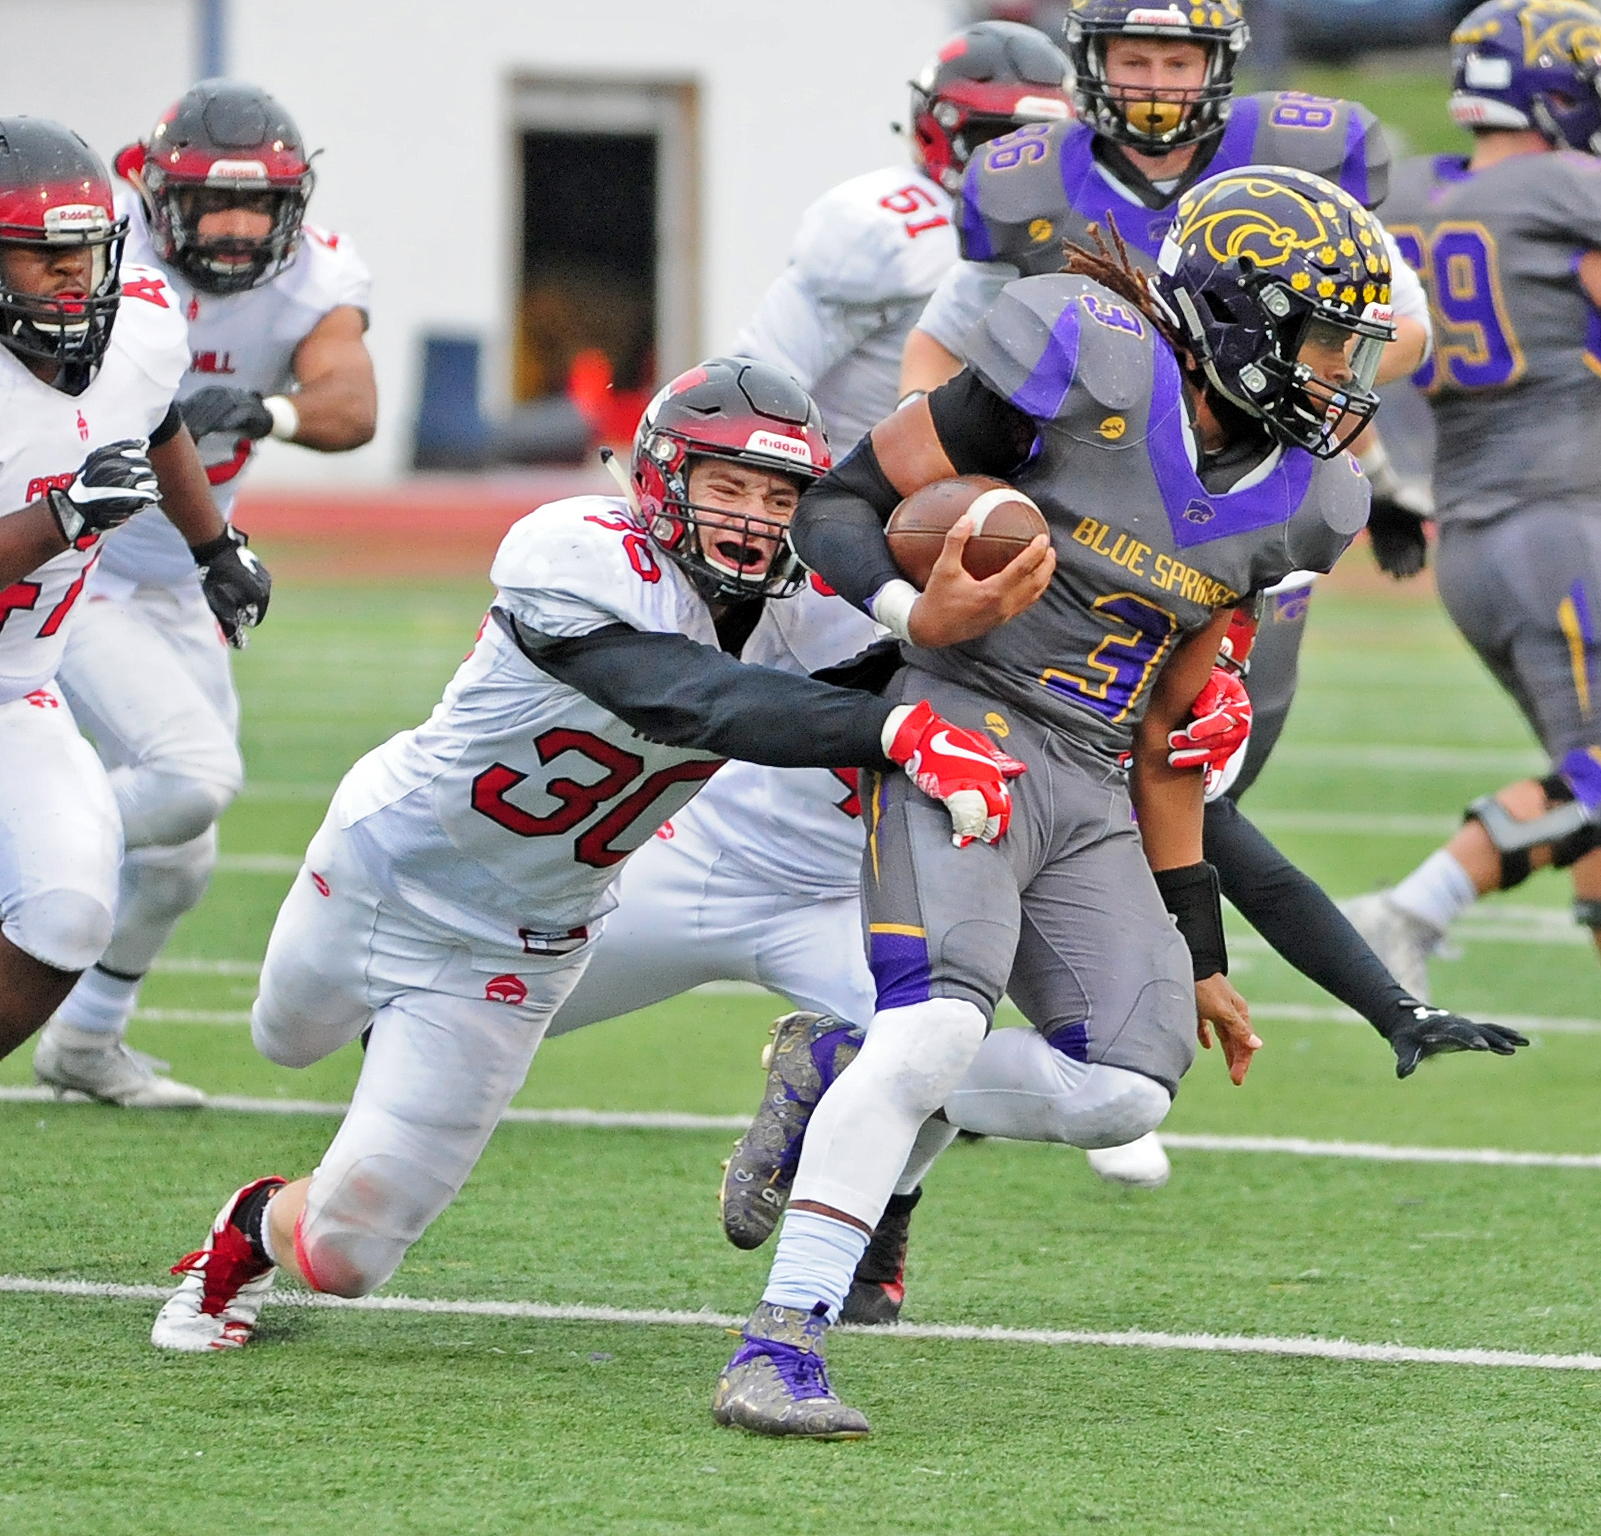 NICK INGRAM/Citizen photo Park Hill junior linebacker Haden Wallace, left, wraps up Blue Springs running back Aveion Bailey during a Class 6 semifinal Saturday, Nov. 11 in Blue Springs, Mo.